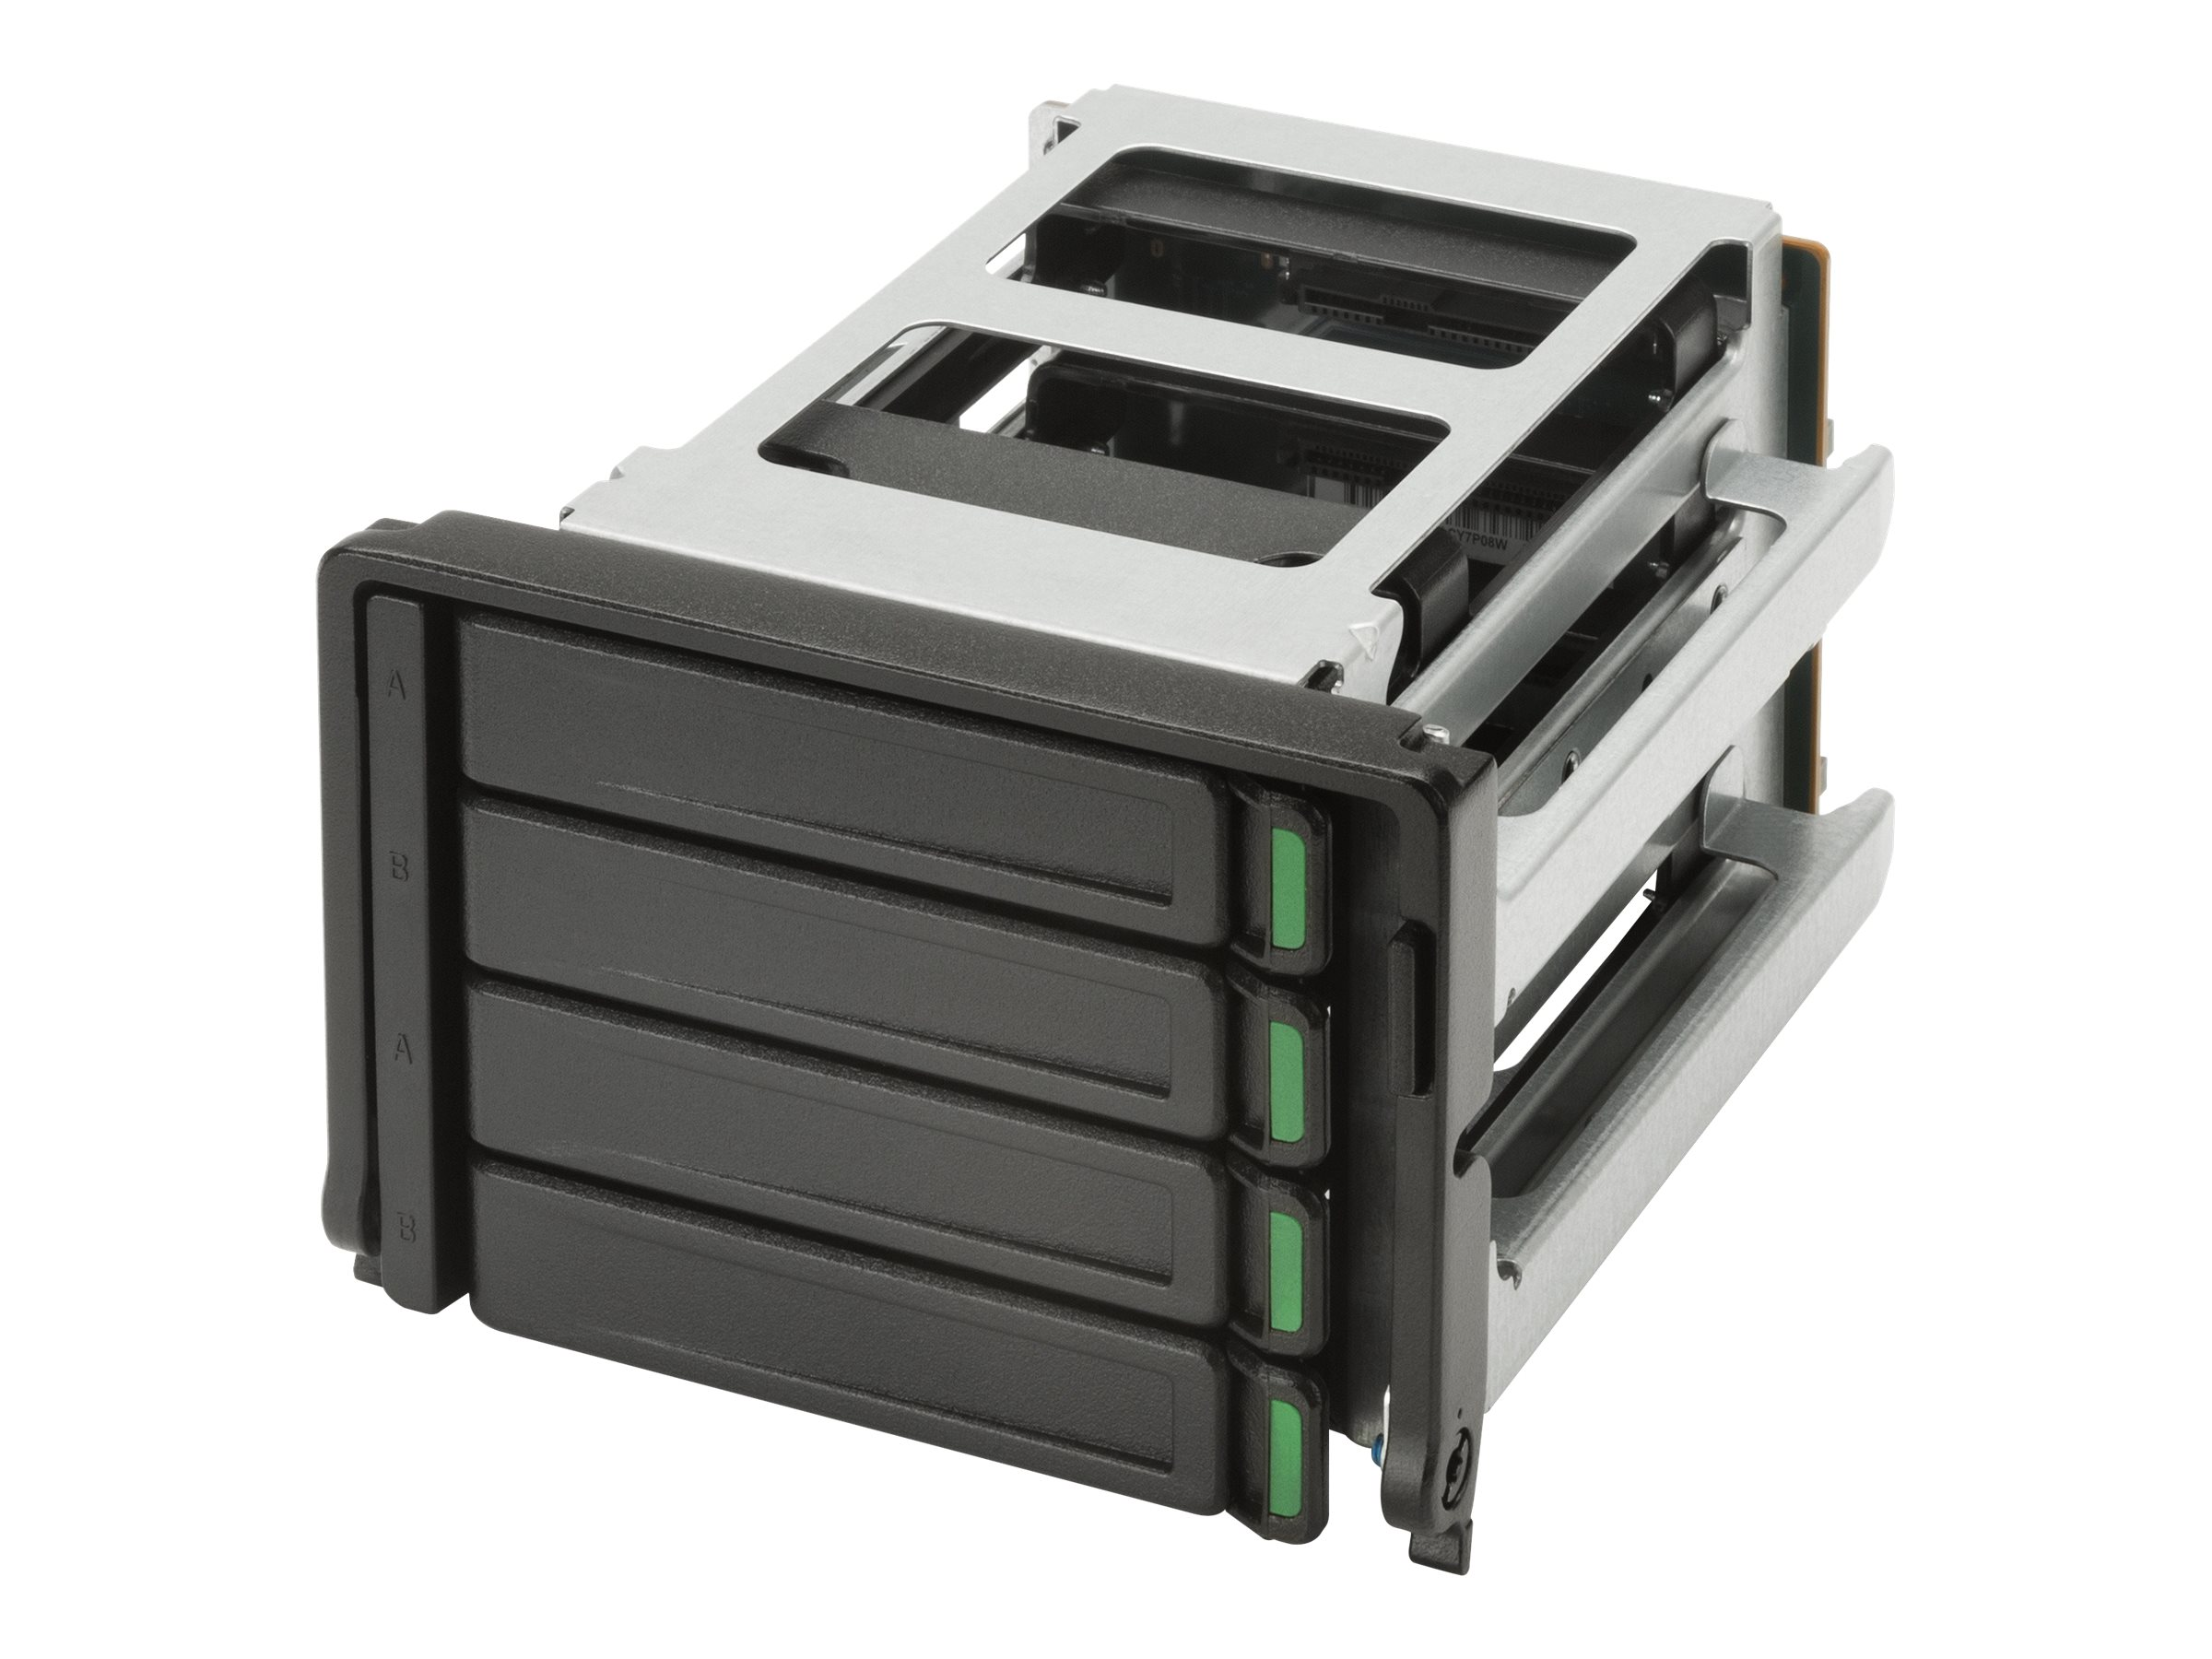 HP High Density 4 Bay Storage Kit - Speichereinschubadapter - 2 x 3,5